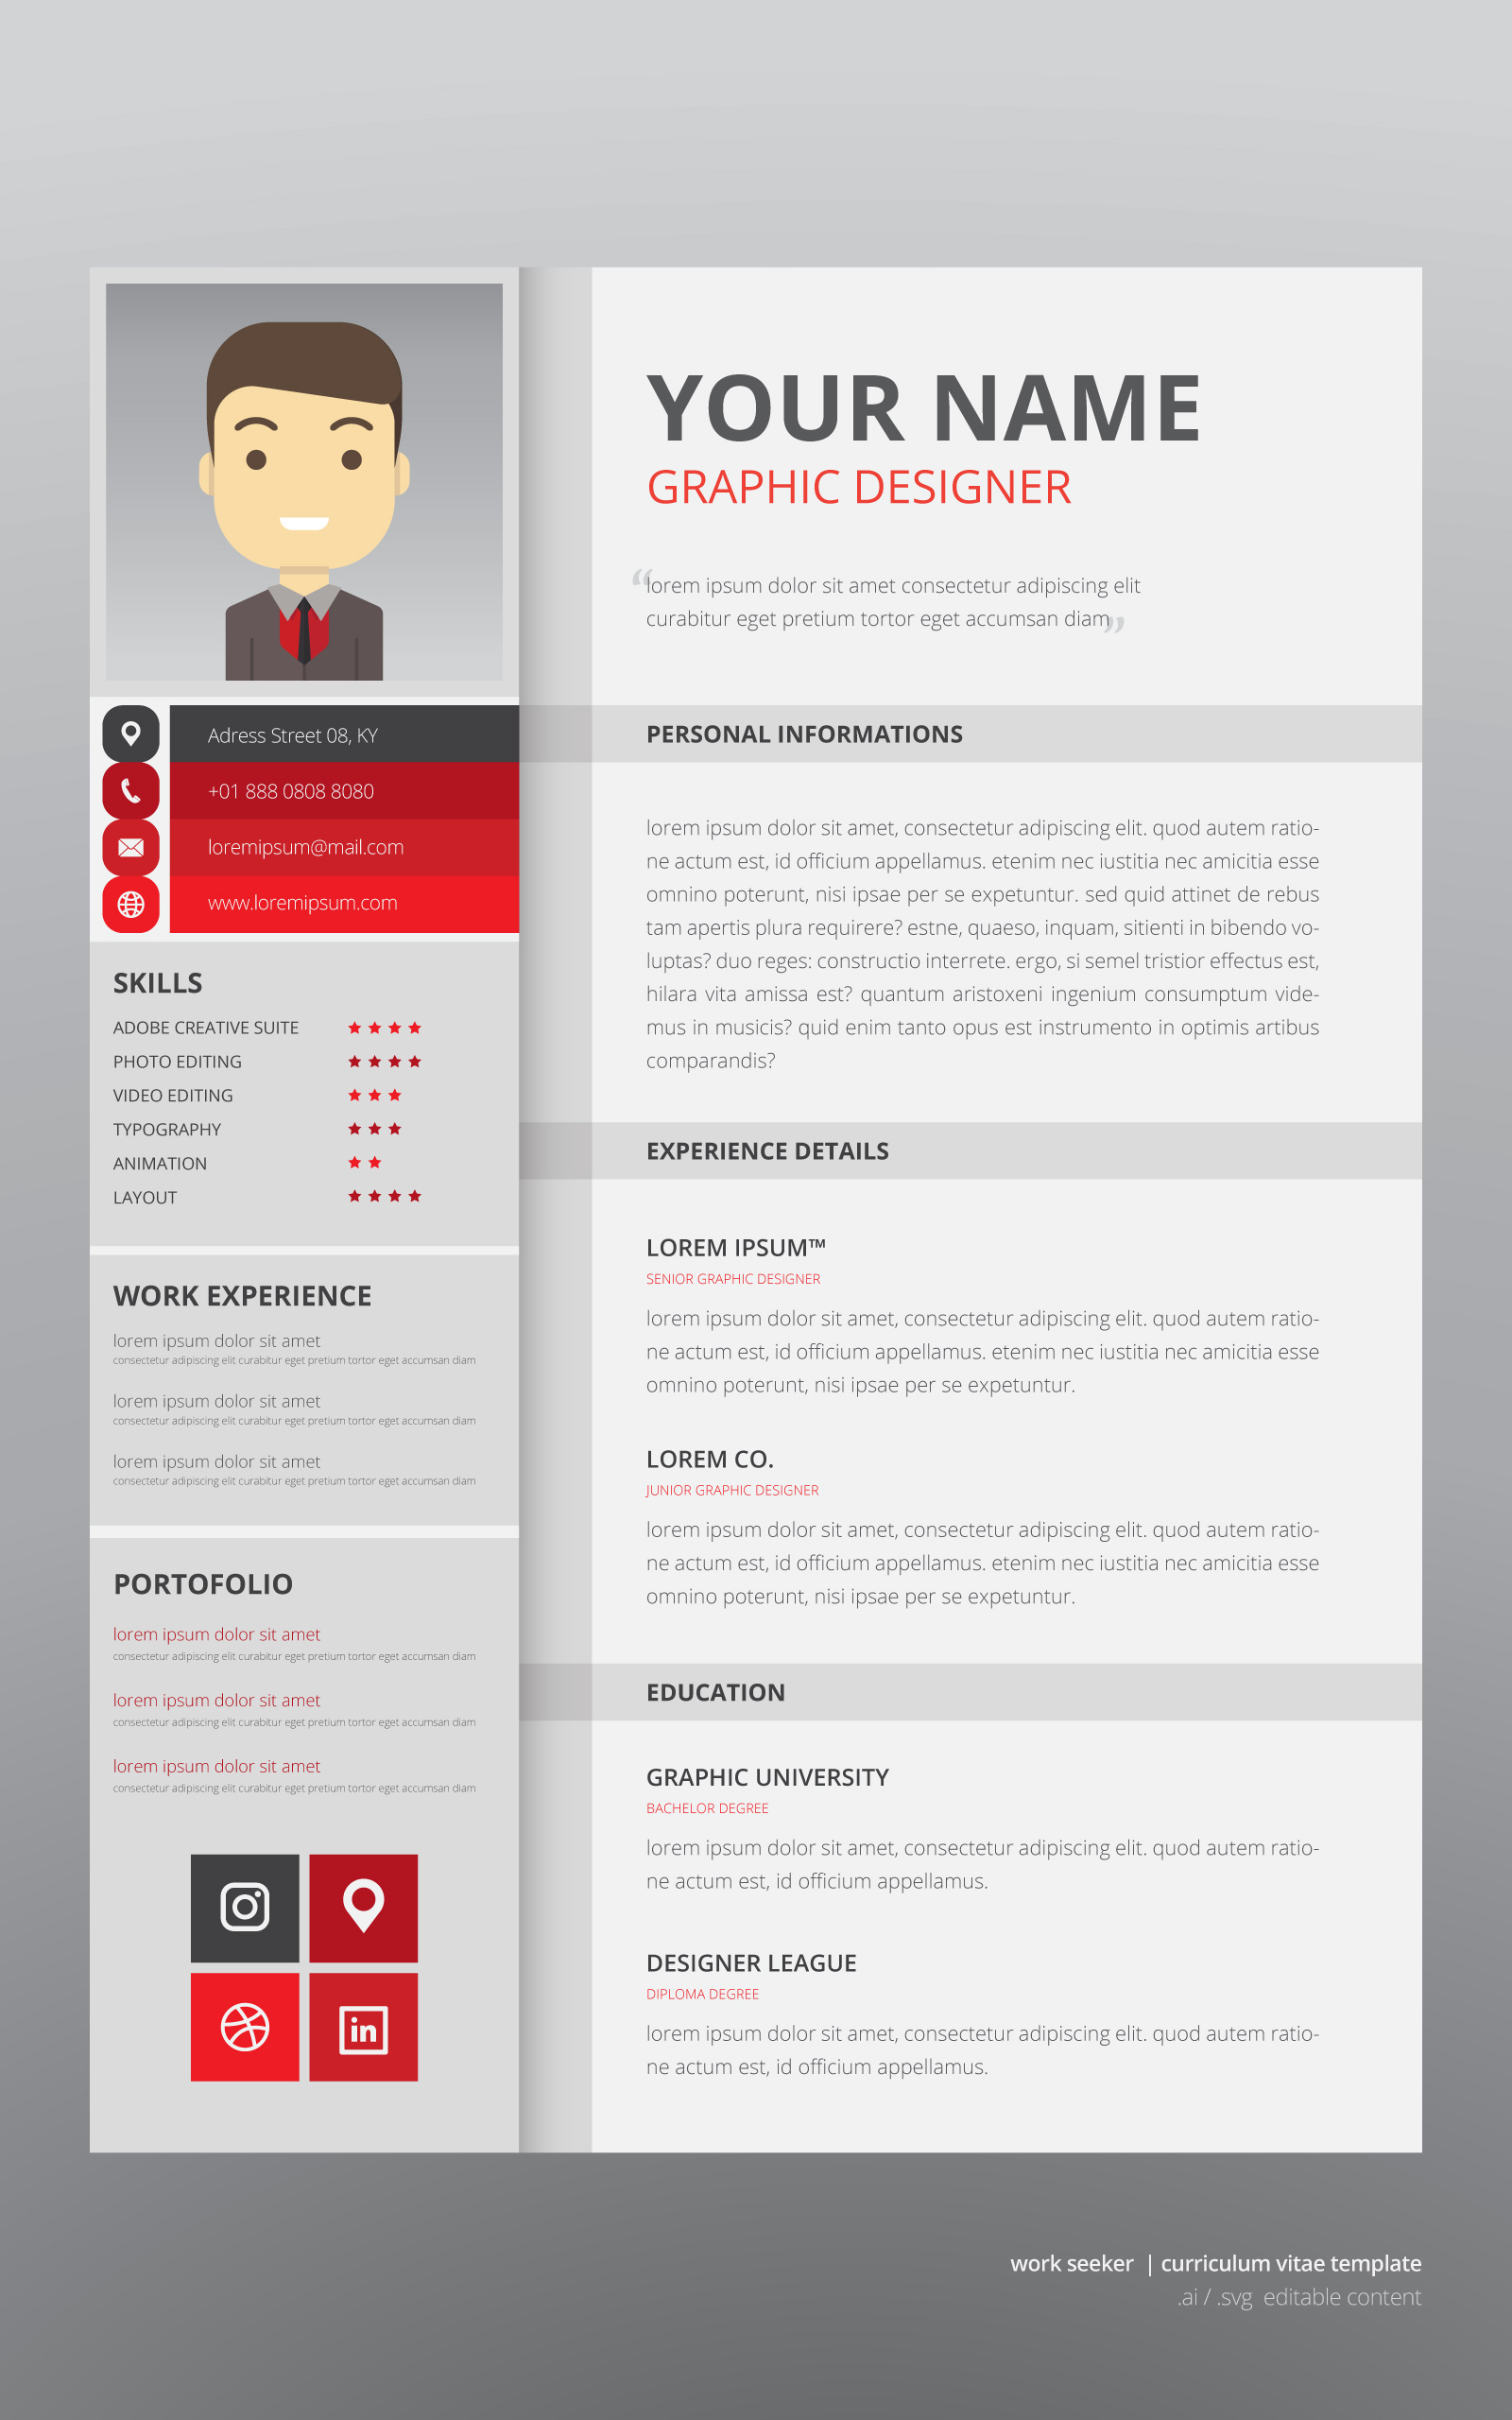 job search curriculum vitae template